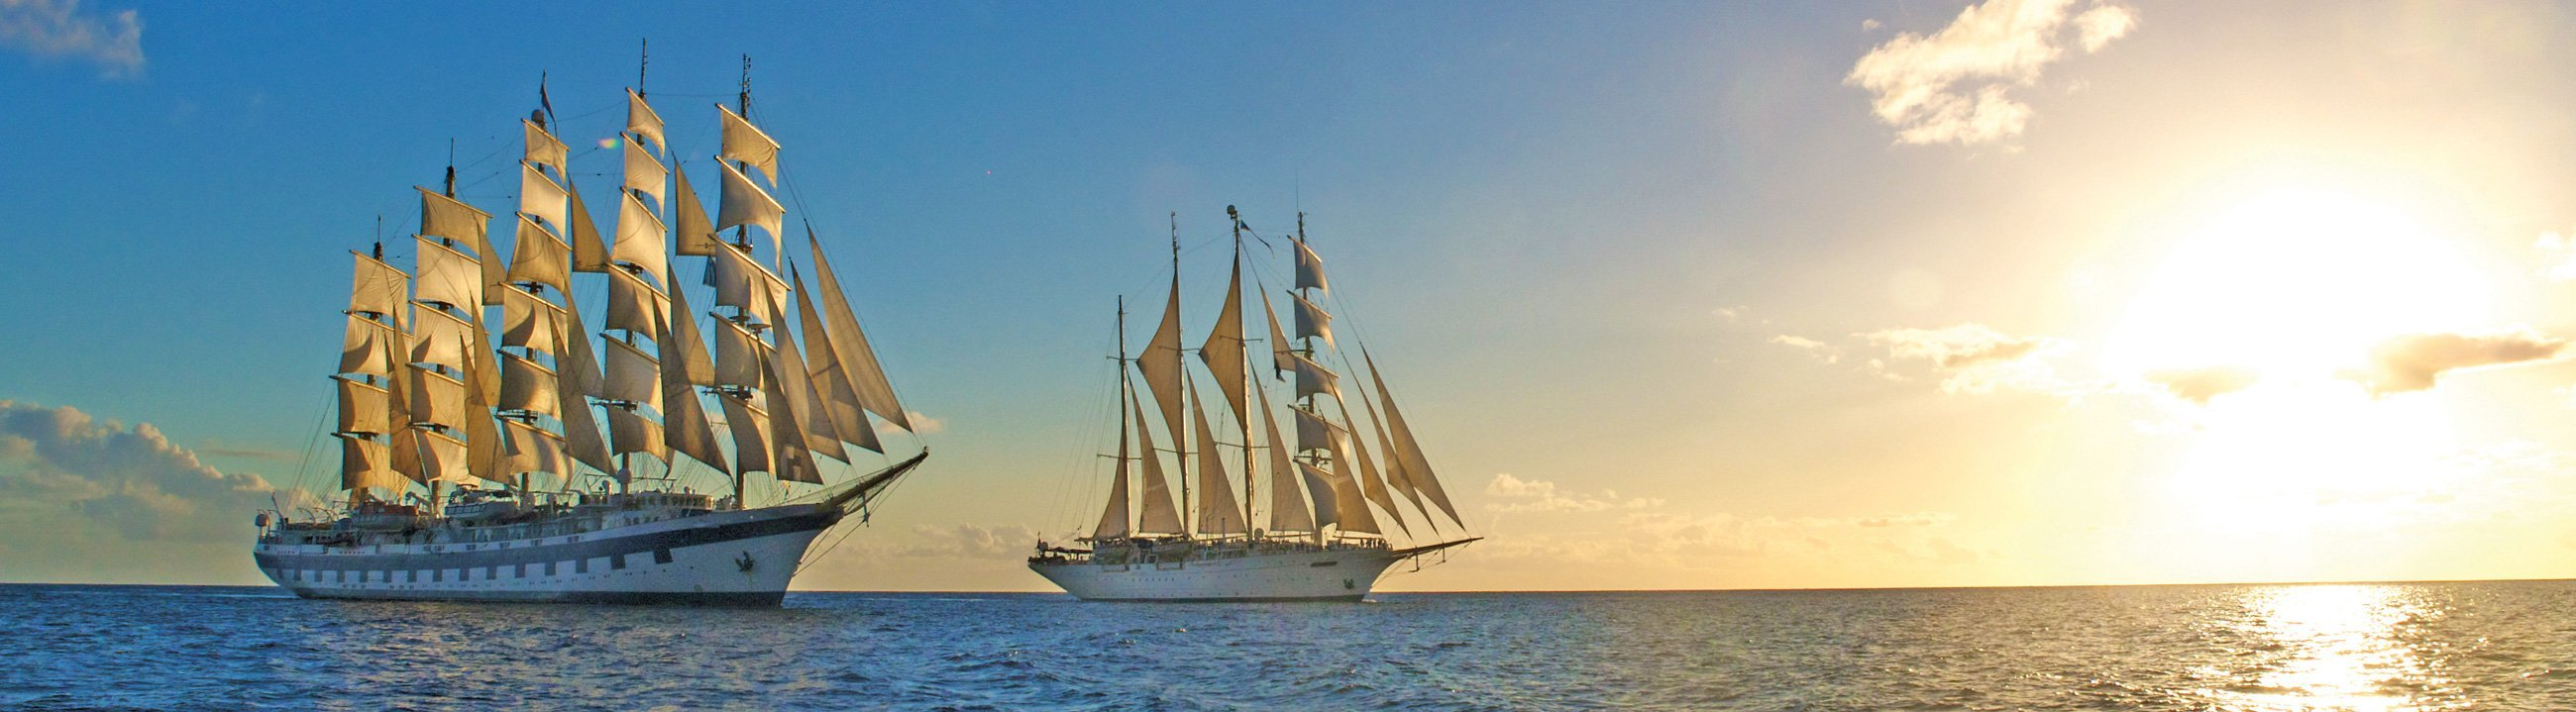 Royal Clipper und Star Clipper